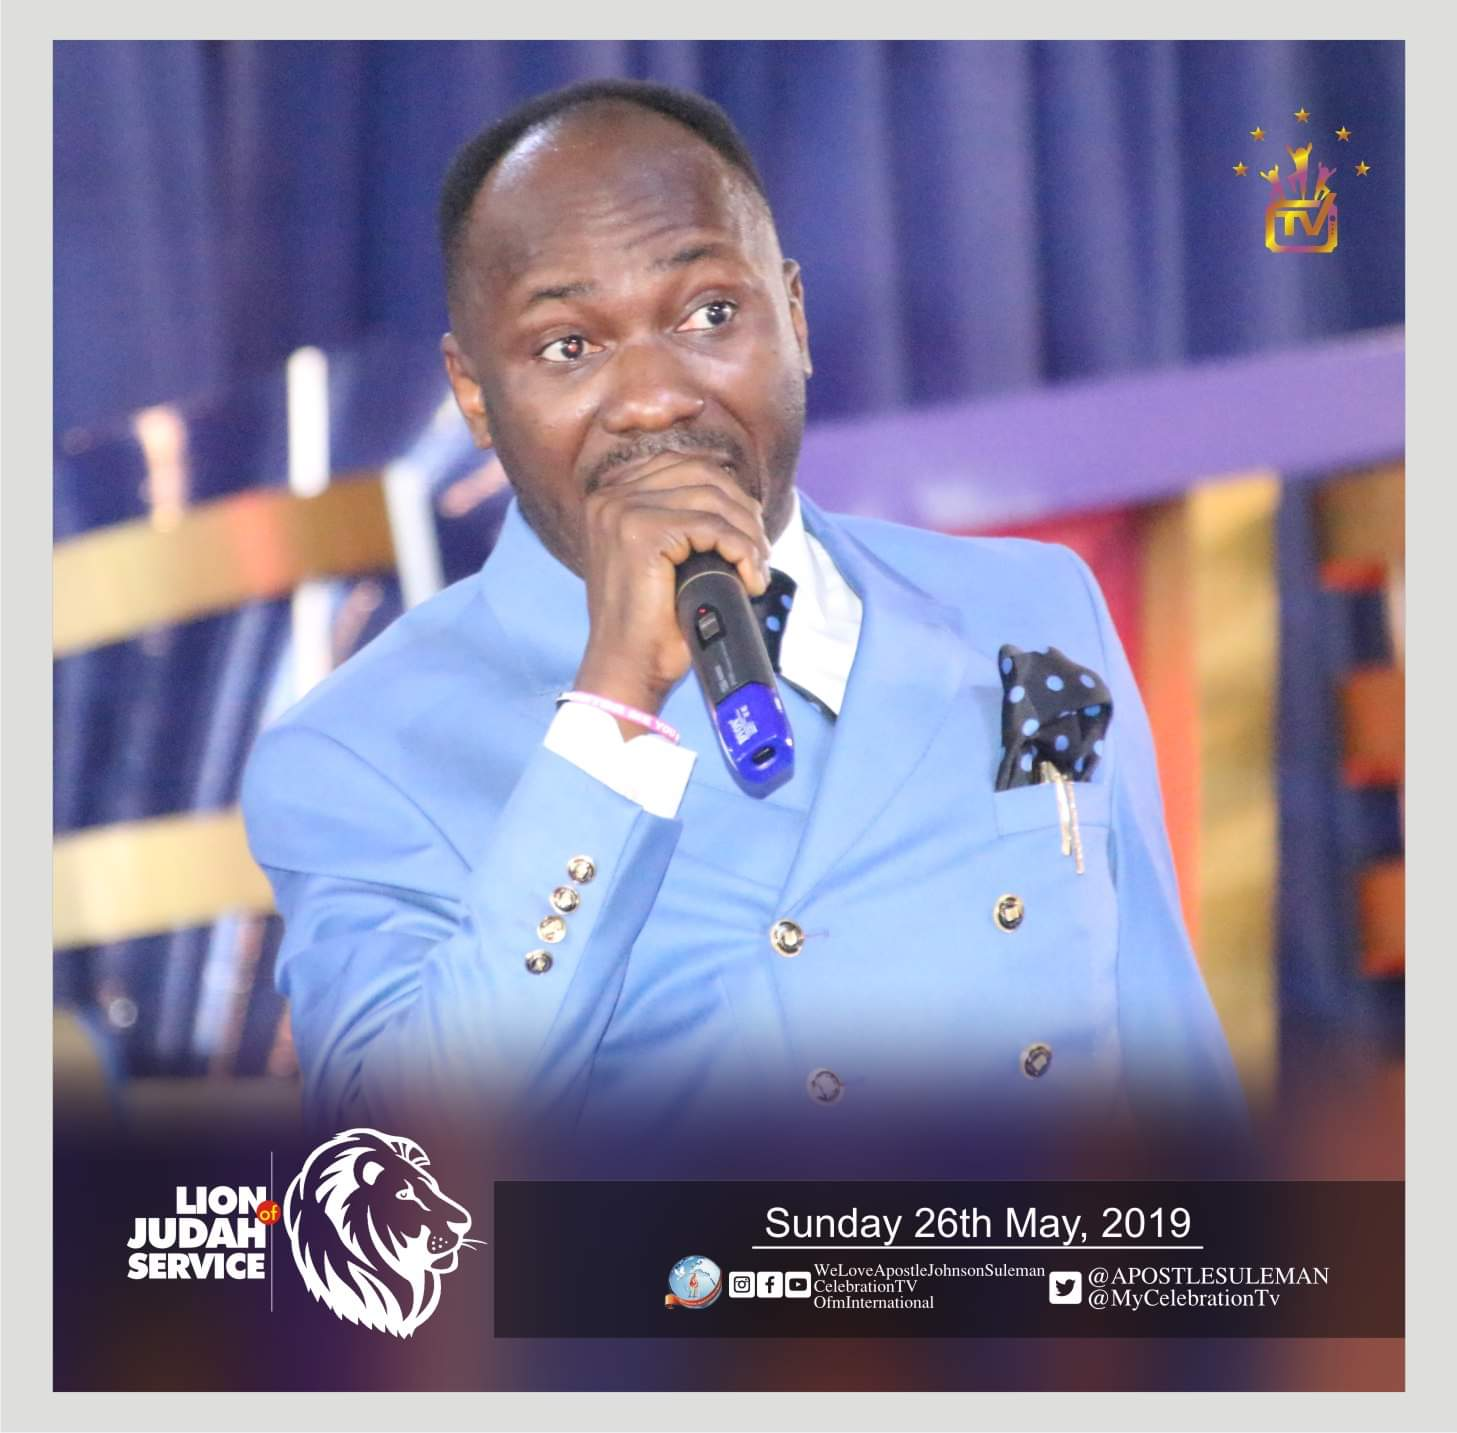 Apostle Johnson Suleman Acquires Helicopter A Month After His Private Jet Came